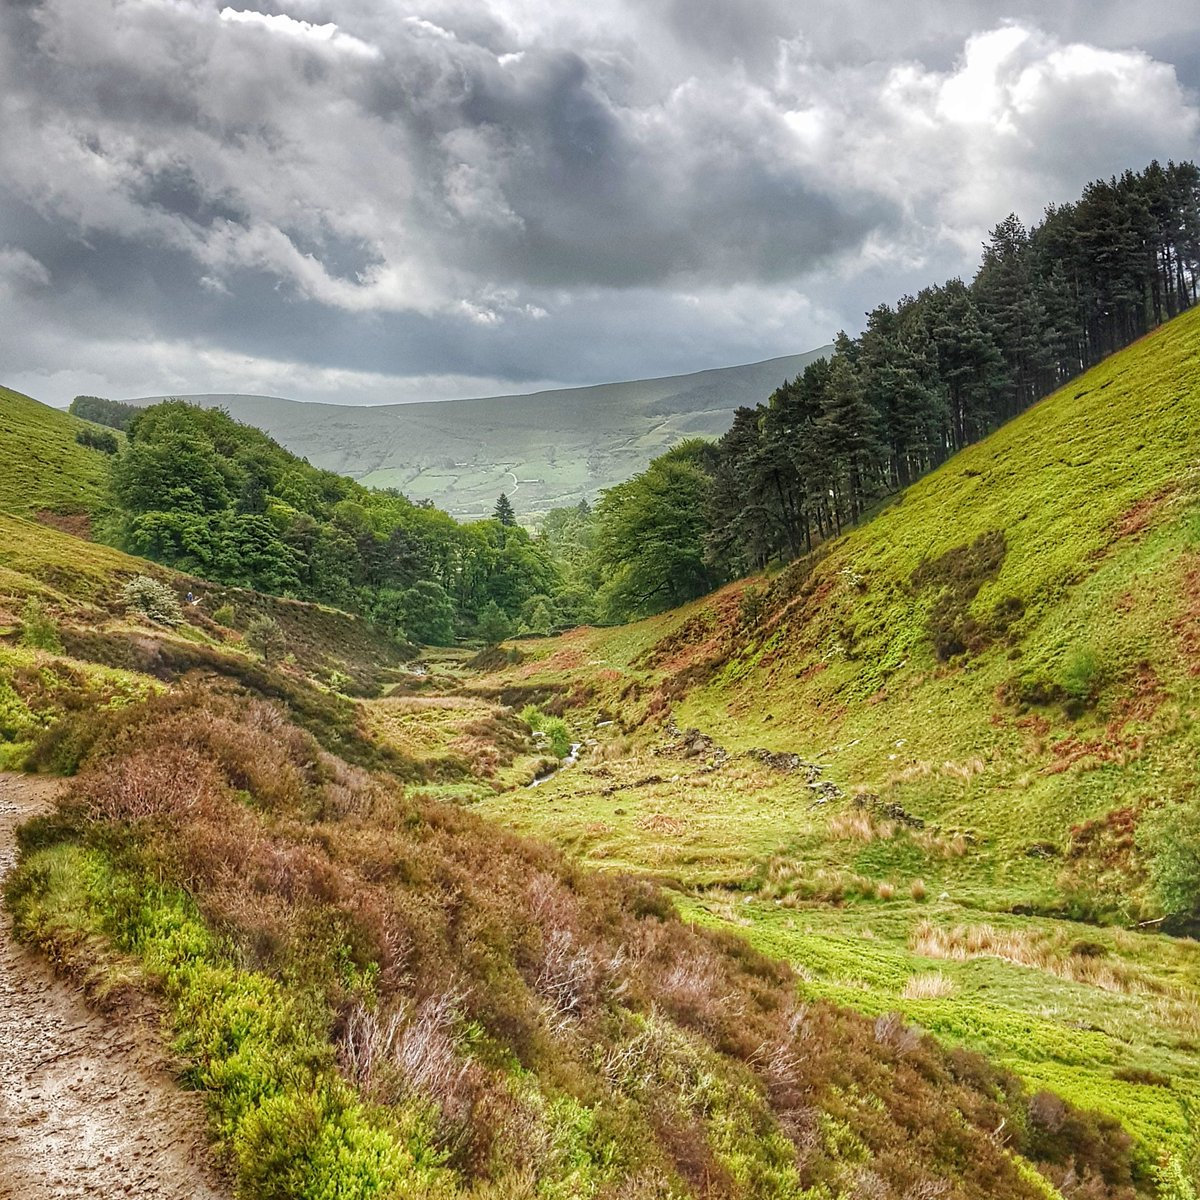 Its worth the #climb for the #fantasticview #edale #derbyshire #walkingwiththedogpic.twitter.com/n4WsCMdsca